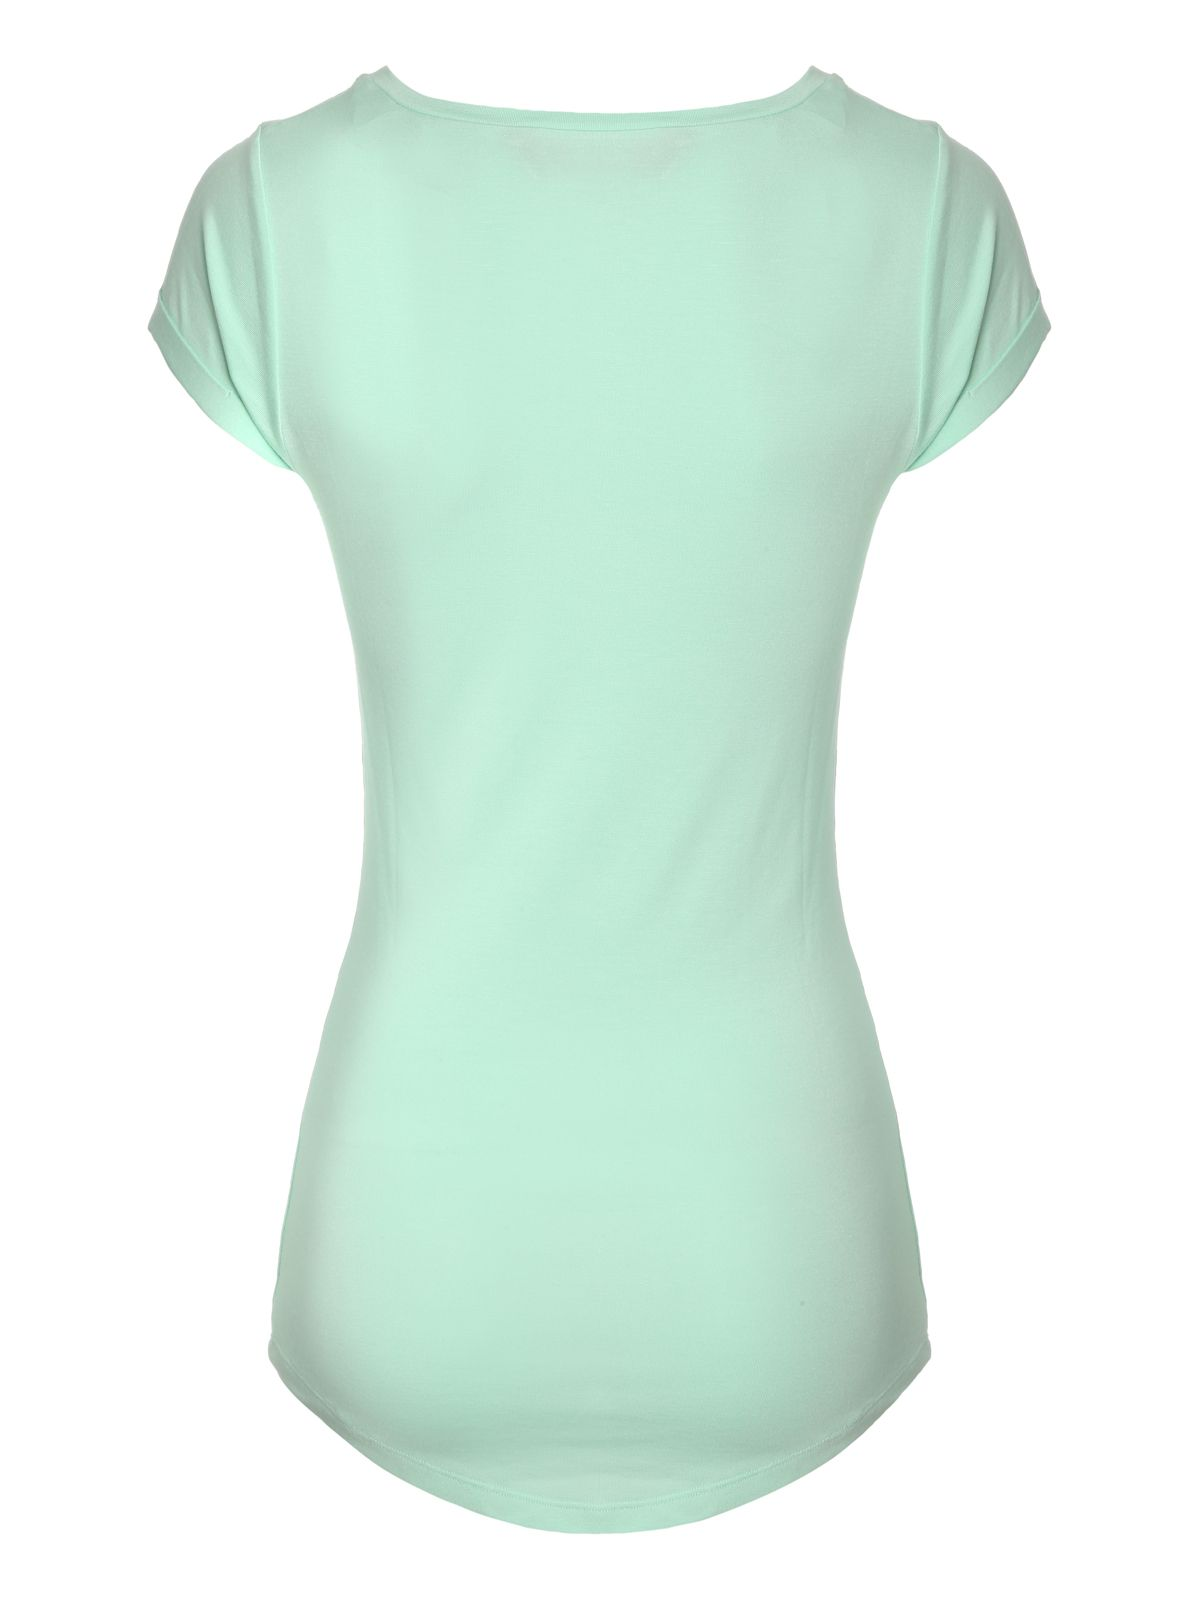 Scoop neck short sleeve t-shirt